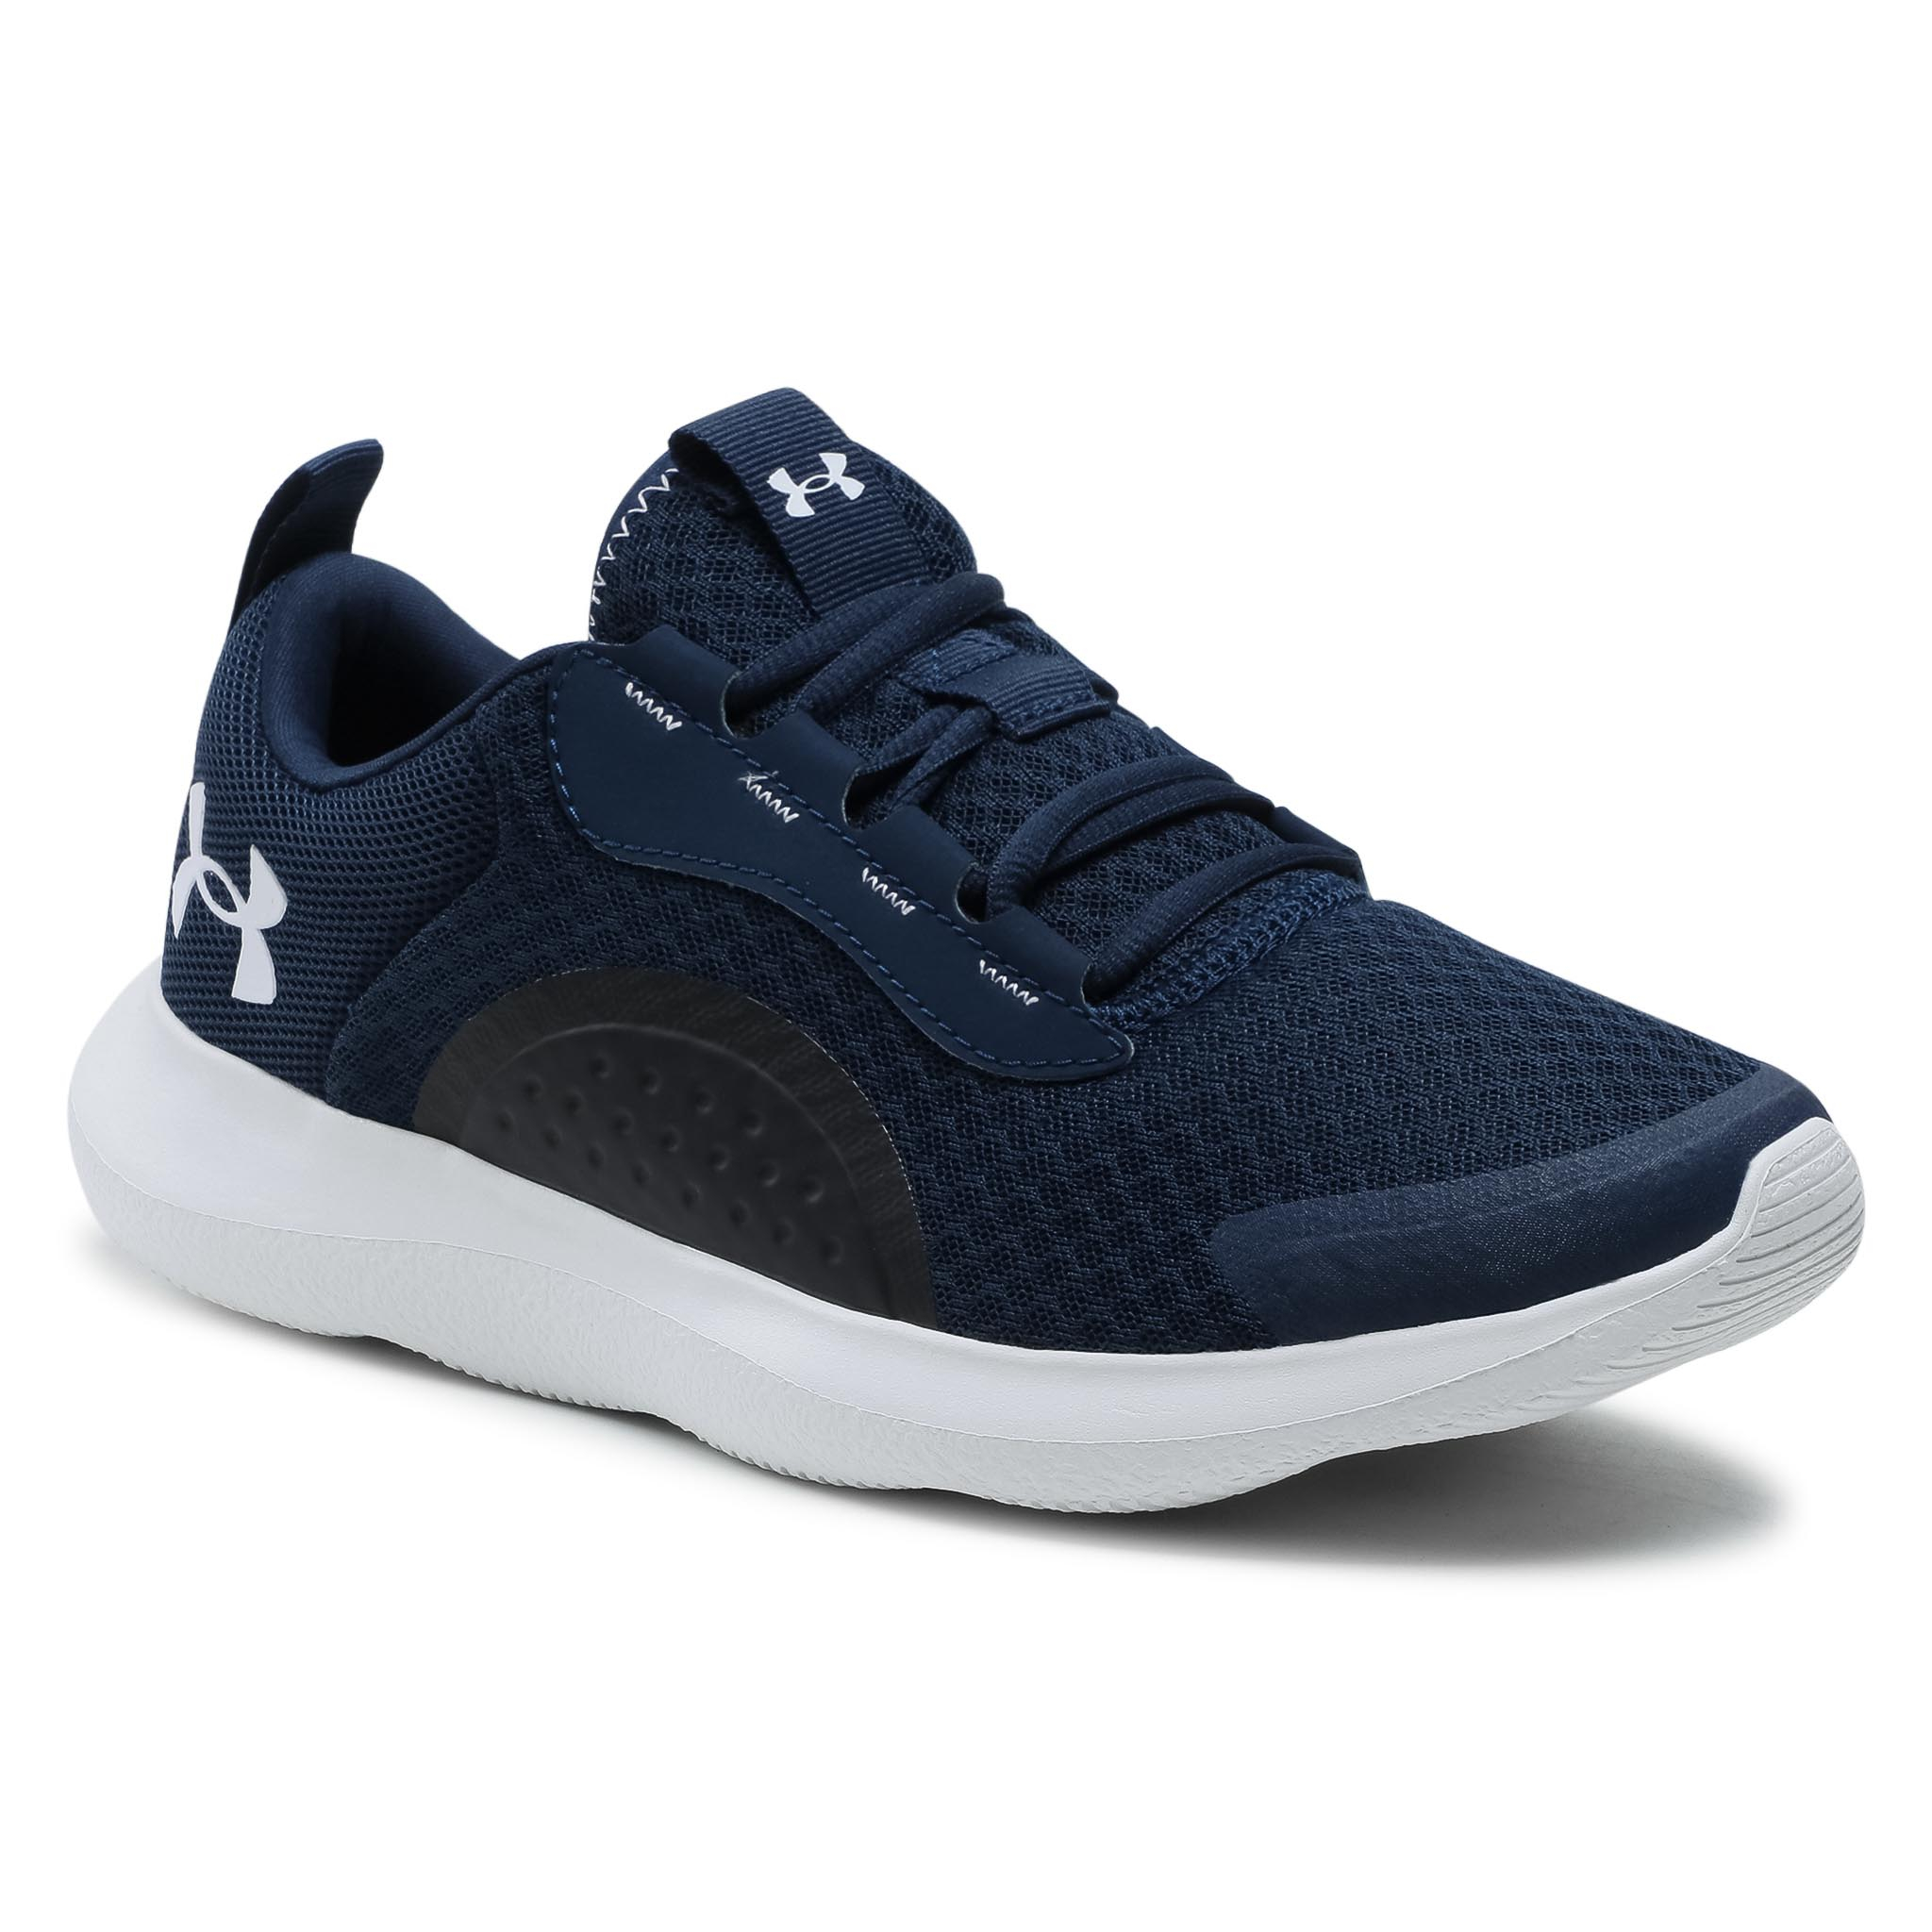 Обувки UNDER ARMOUR - Ua Victory 3023639-401 Nvy